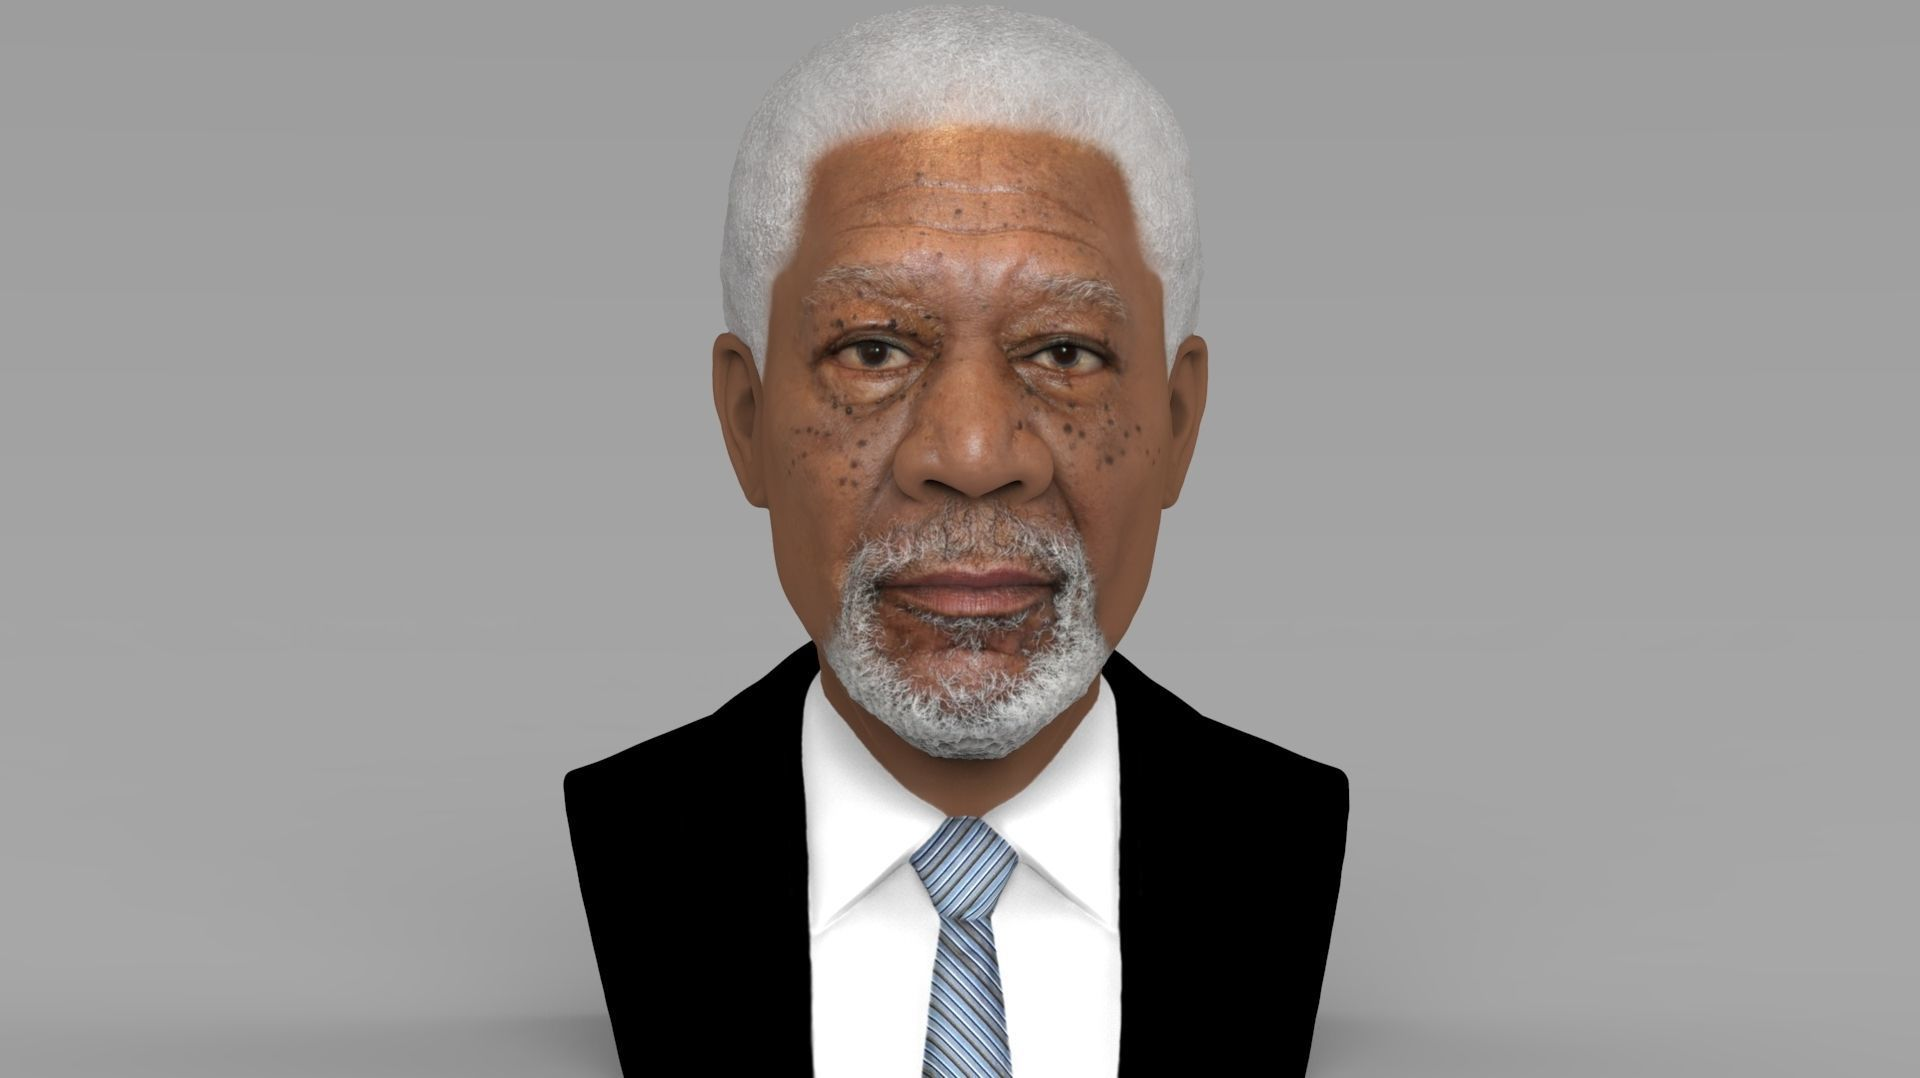 Morgan Freeman bust ready for full color 3D printing